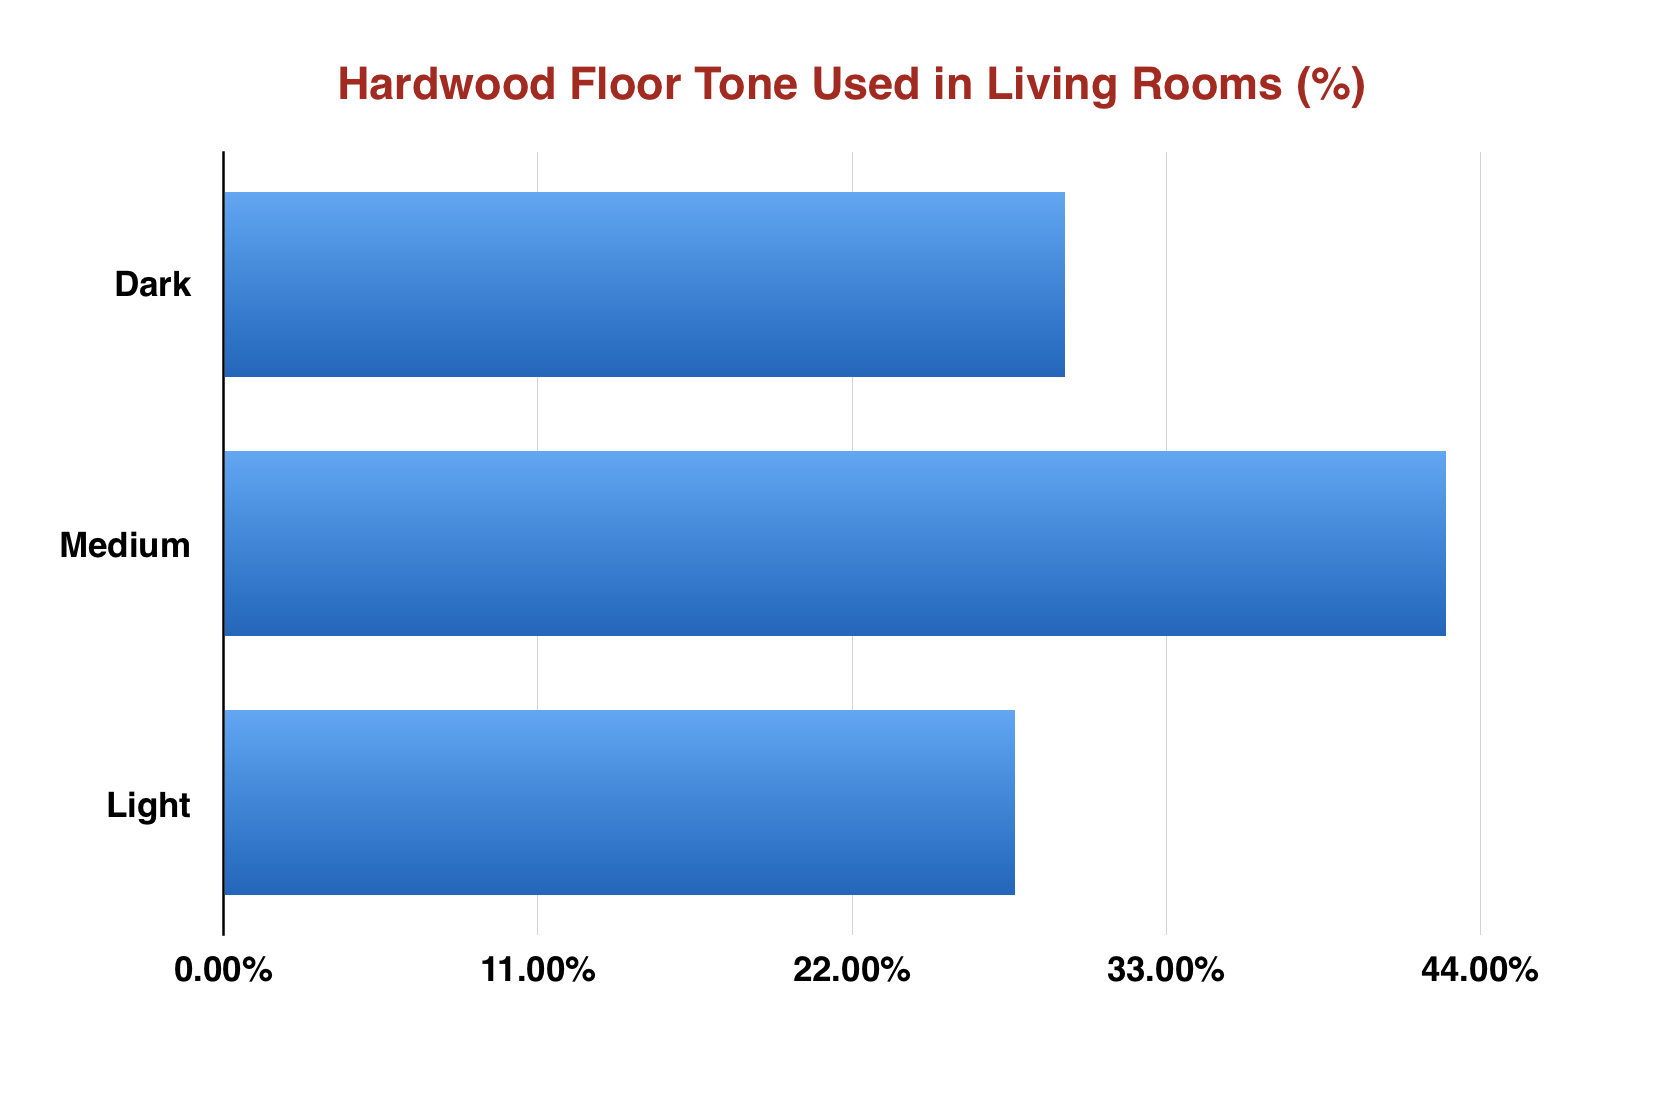 Chart showing percentage of different hardwood tones used in living rooms.